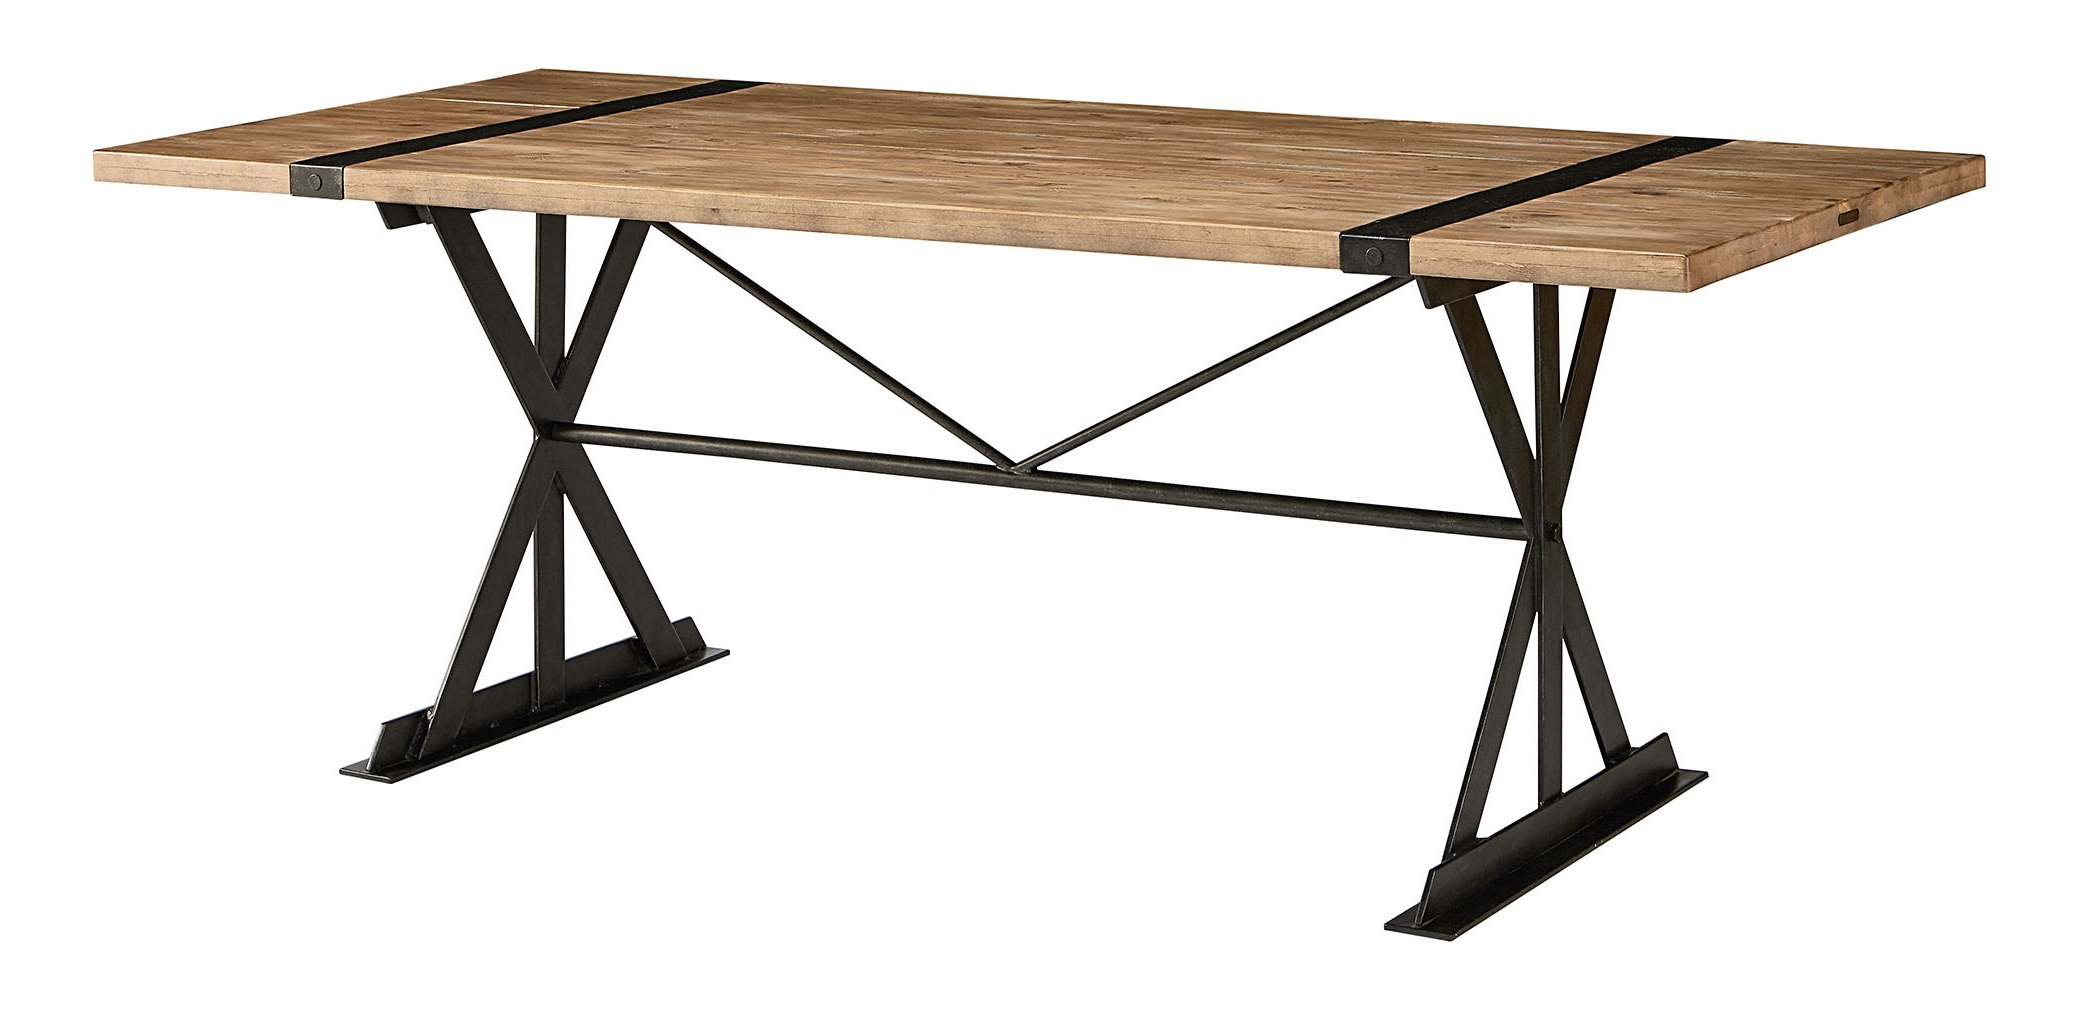 Magnolia Home Sawbuck Dining Tables With 2017 Magnolia Truss & Strap Dining Table – Urban Silo Market (View 20 of 25)